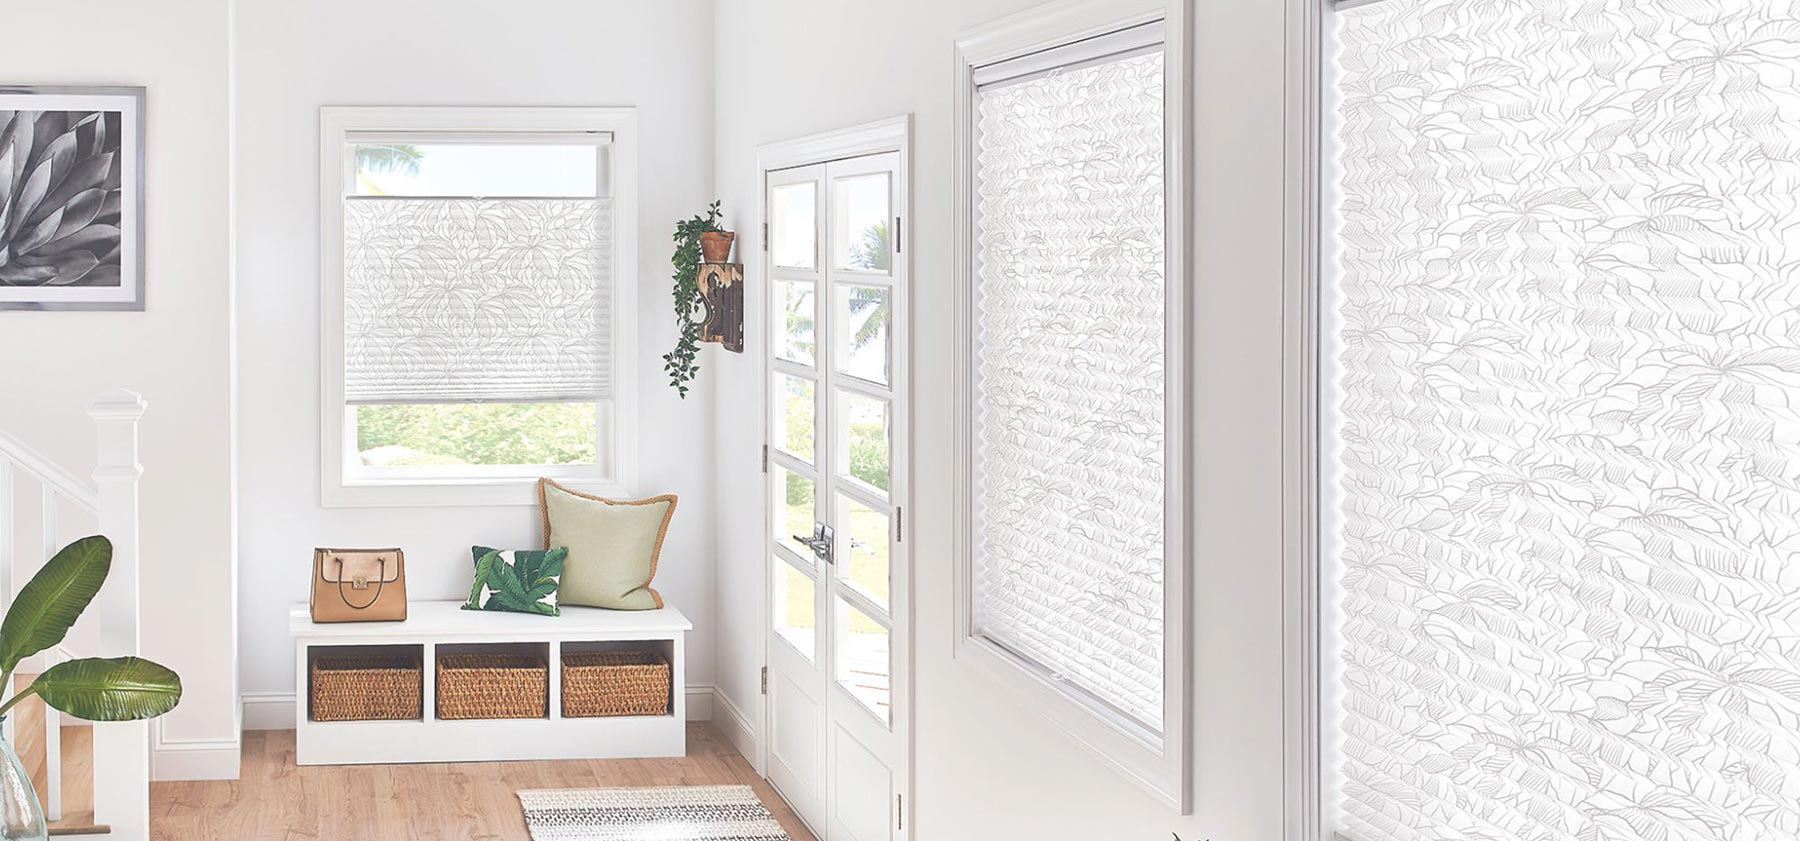 Graber Pleated Shades with Cordless Lift in Imperial, Tropical White 4163, available at John Boyle Decorating Centers in Connecticut.